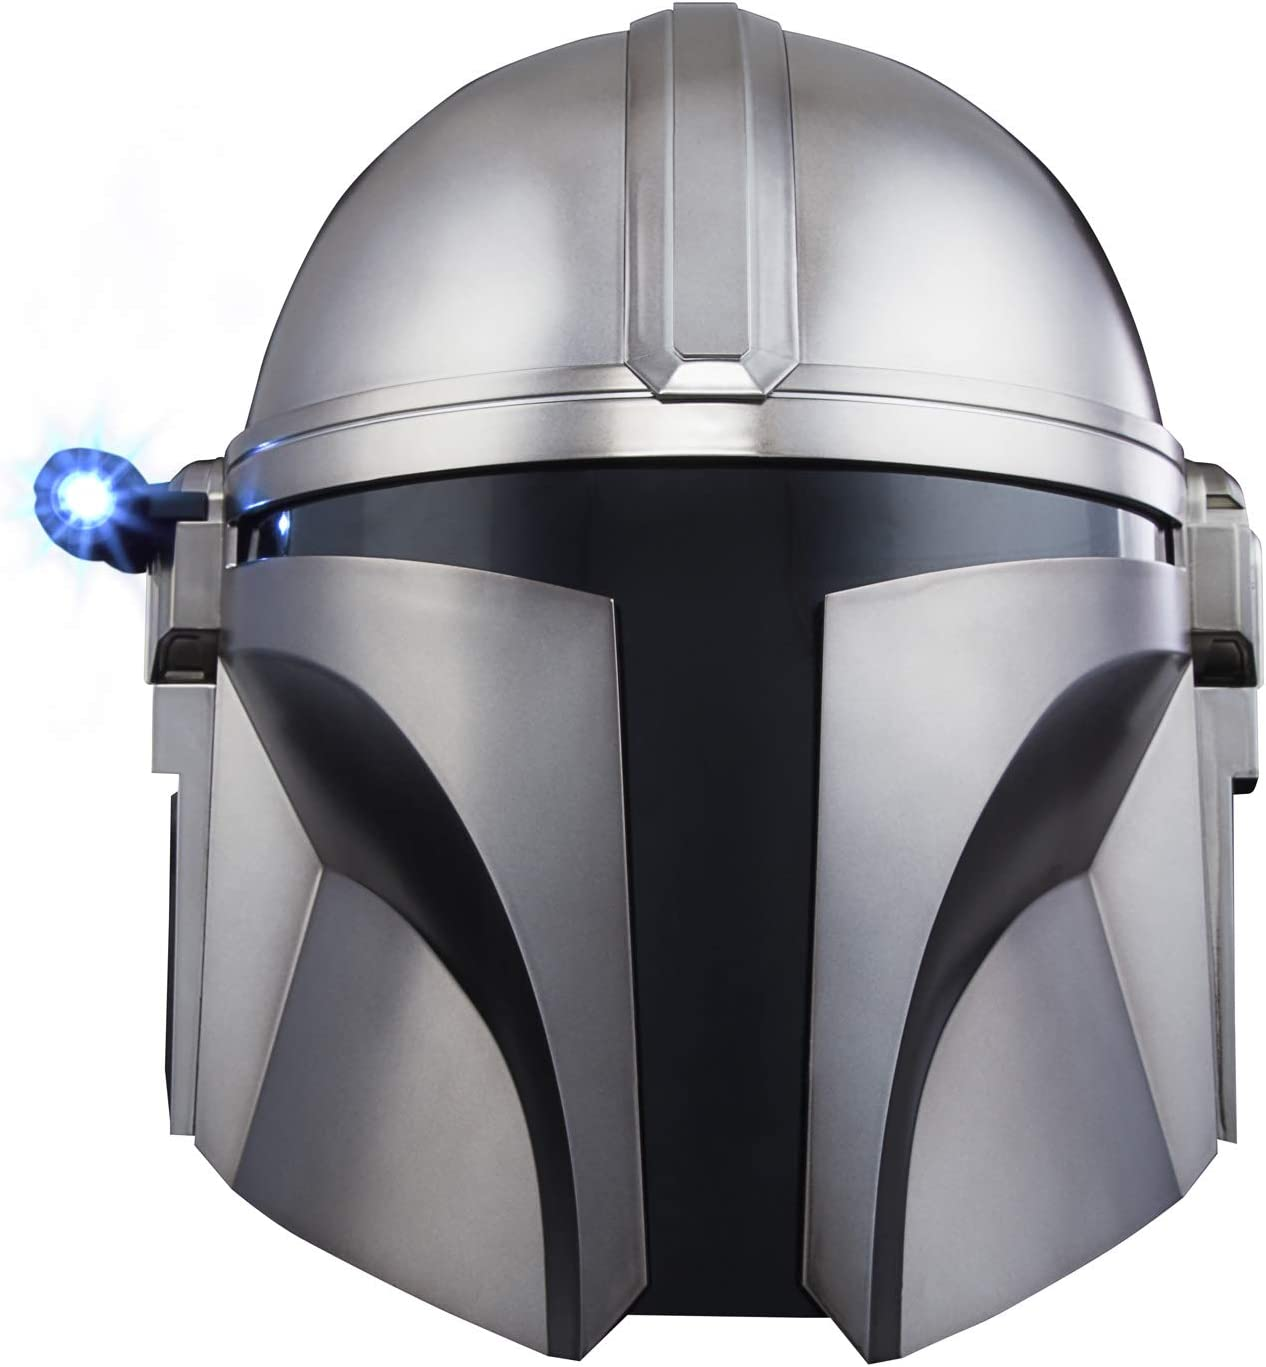 Star Wars The Black Series The Mandalorian Premium Electronic Helmet Roleplay Collectible Toys for Kids Ages 14 and Up